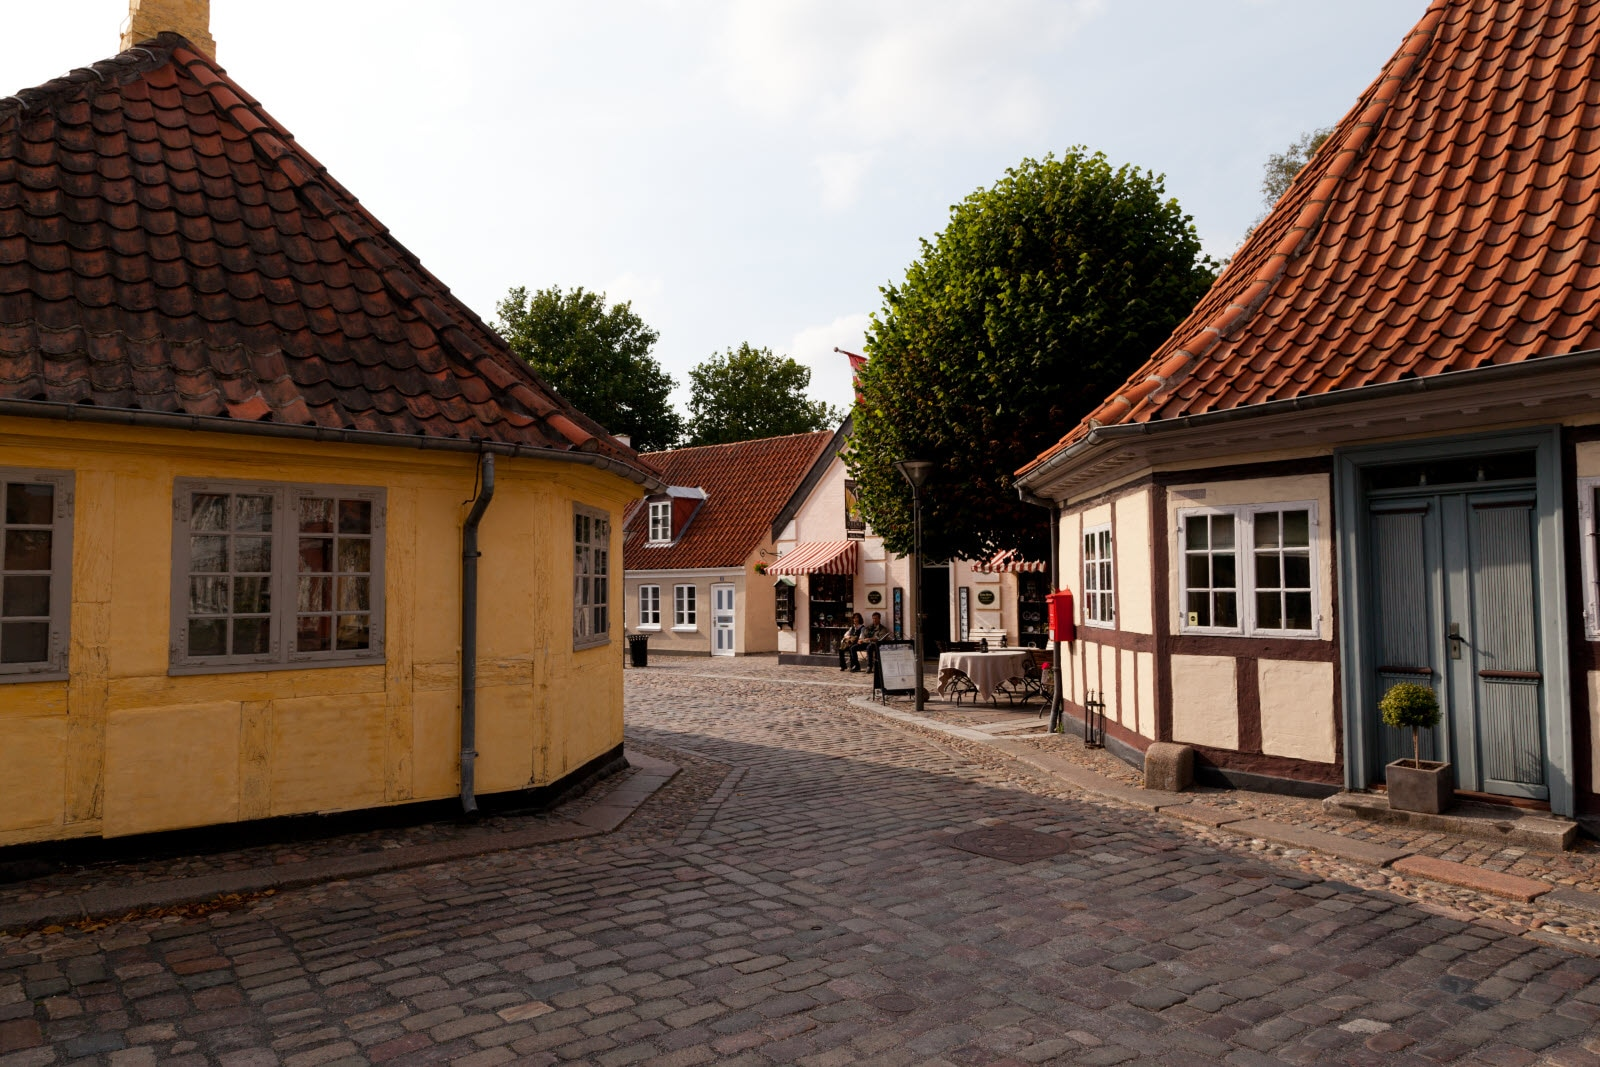 The Old Town in Odense